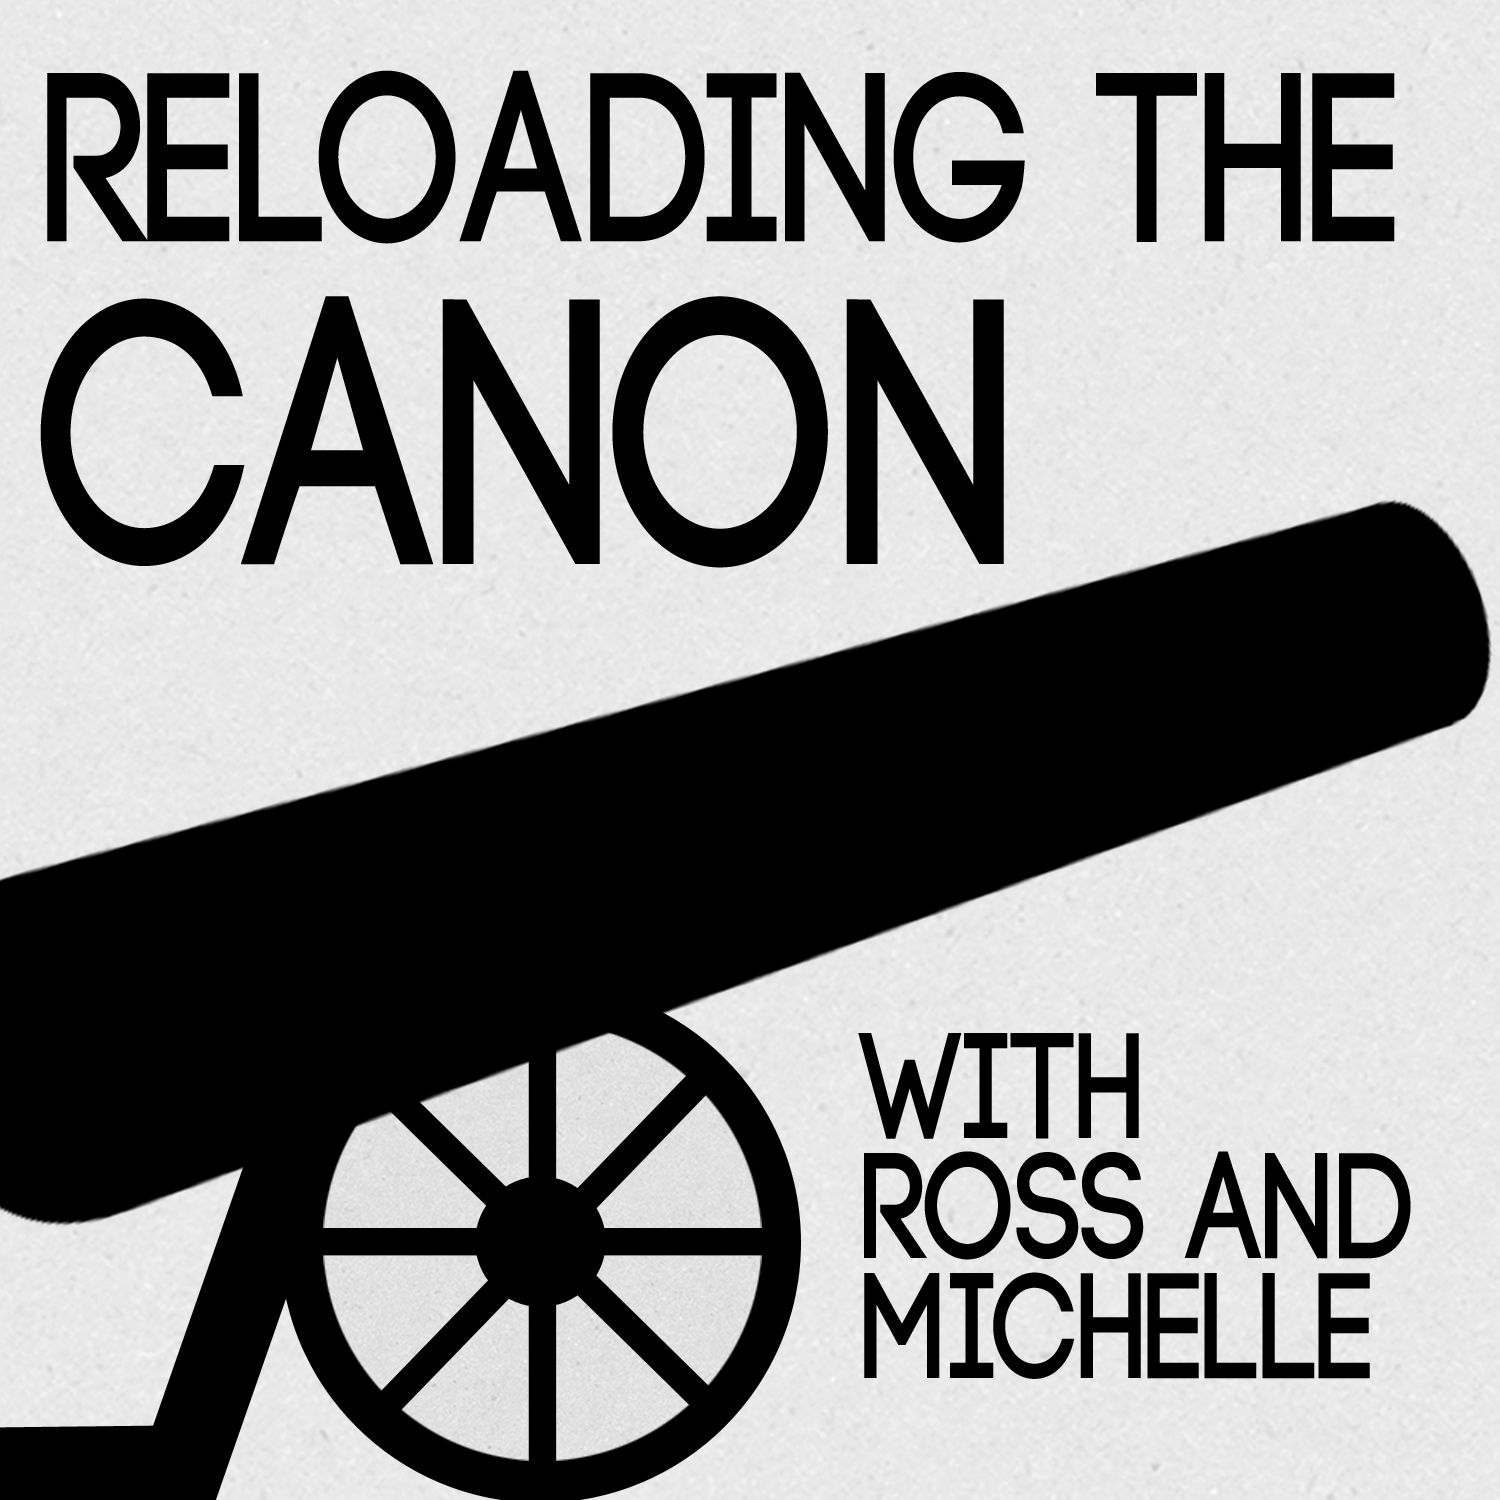 Reloading the Canon